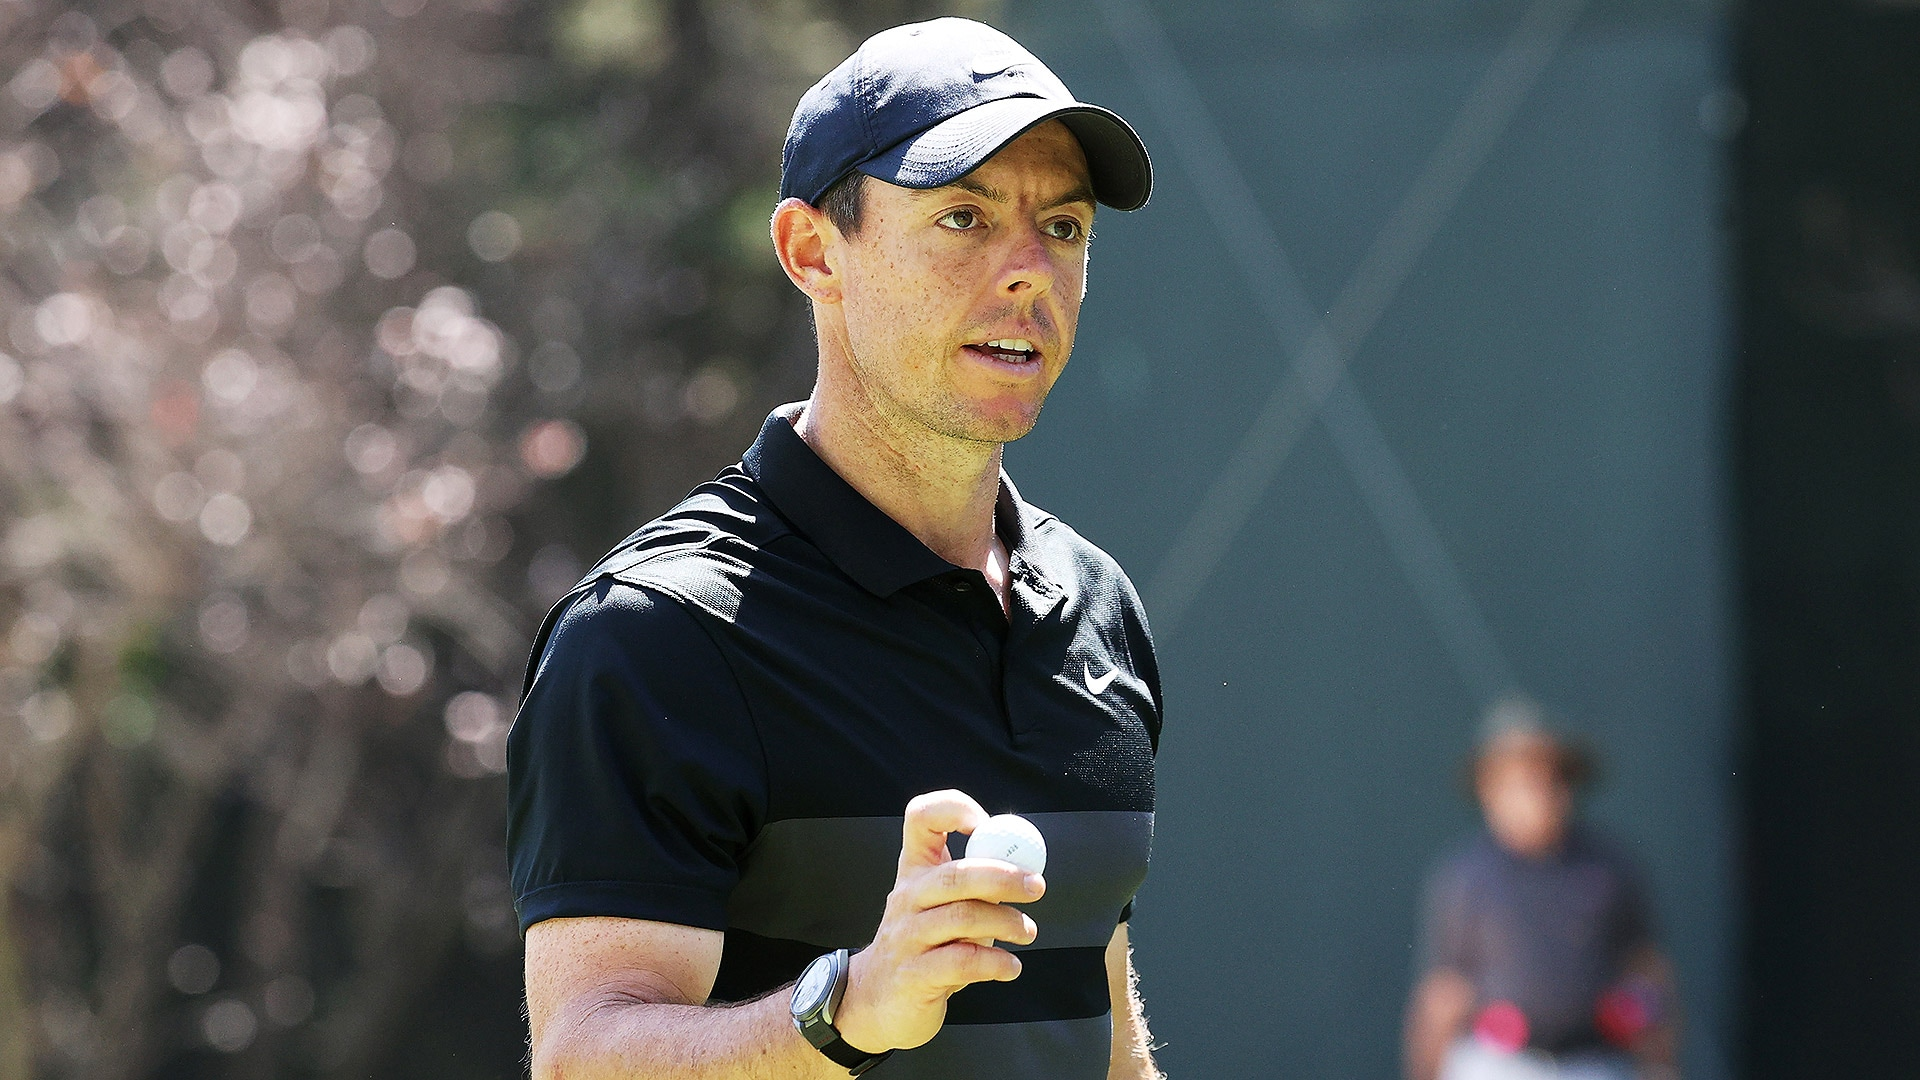 Leader Rory McIlroy a man of words and a man of action ...